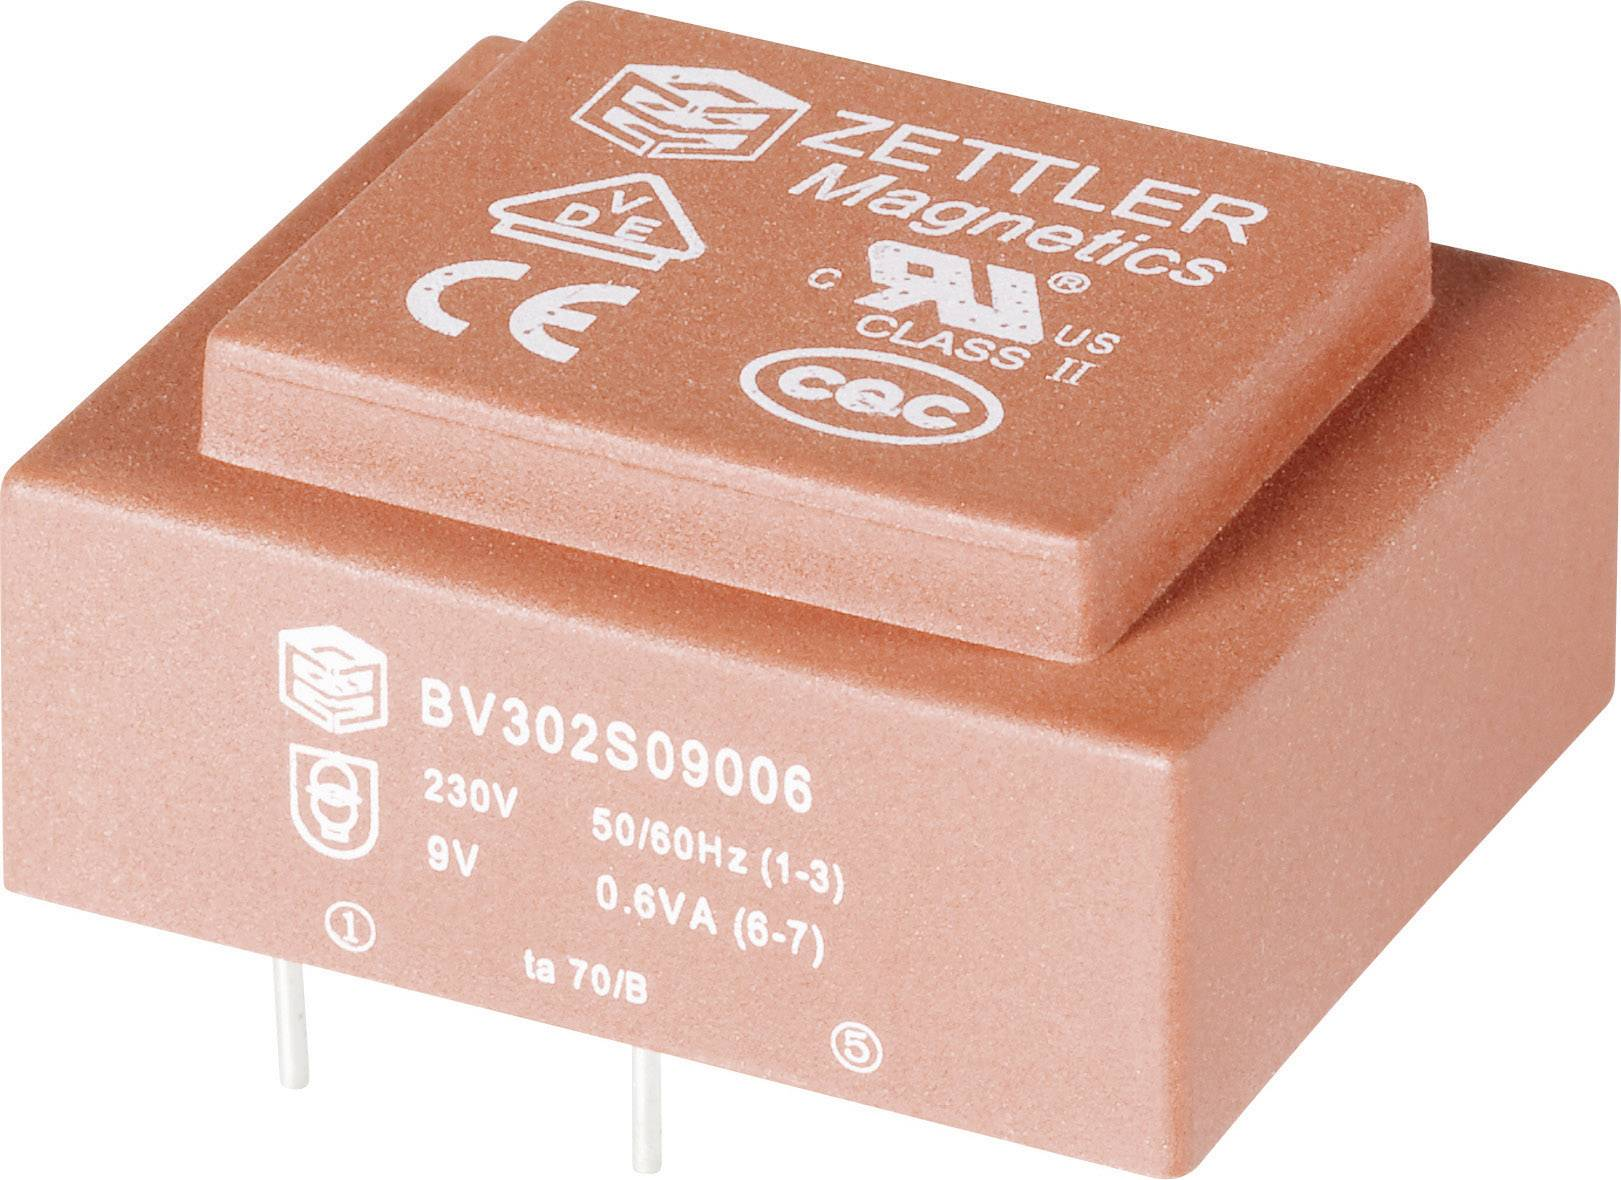 Transformátor do DPS Zettler Magnetics El30, 230 V/24 V, 25 mA, 1,8 VA